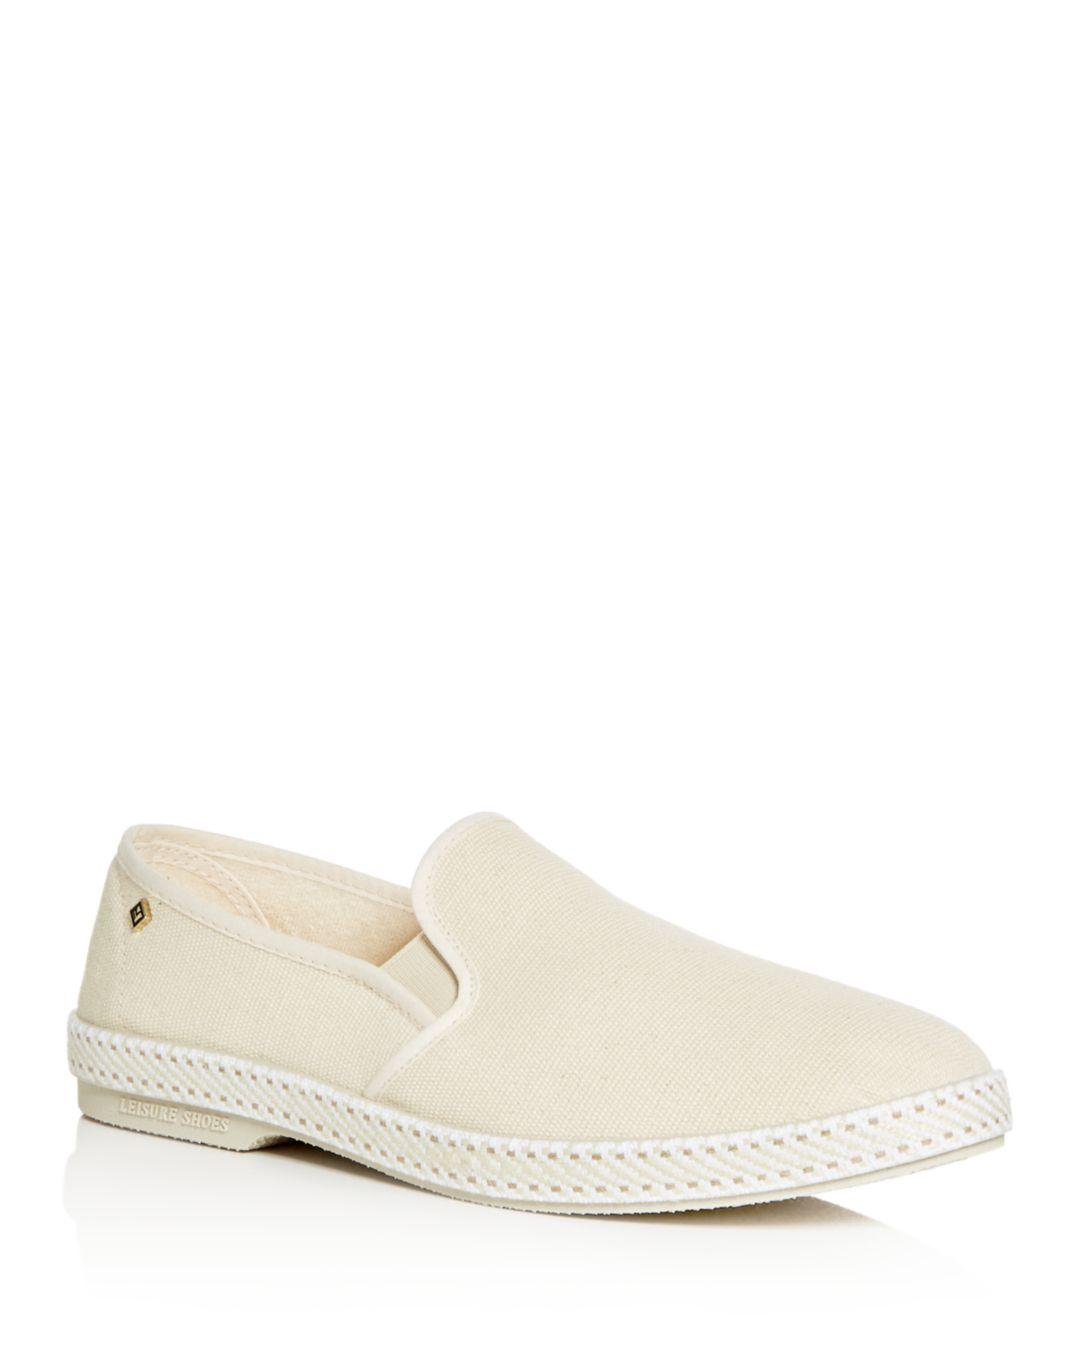 941430fc8a0 Lyst - Rivieras Men s Classic Slip-on Sneakers in Natural for Men